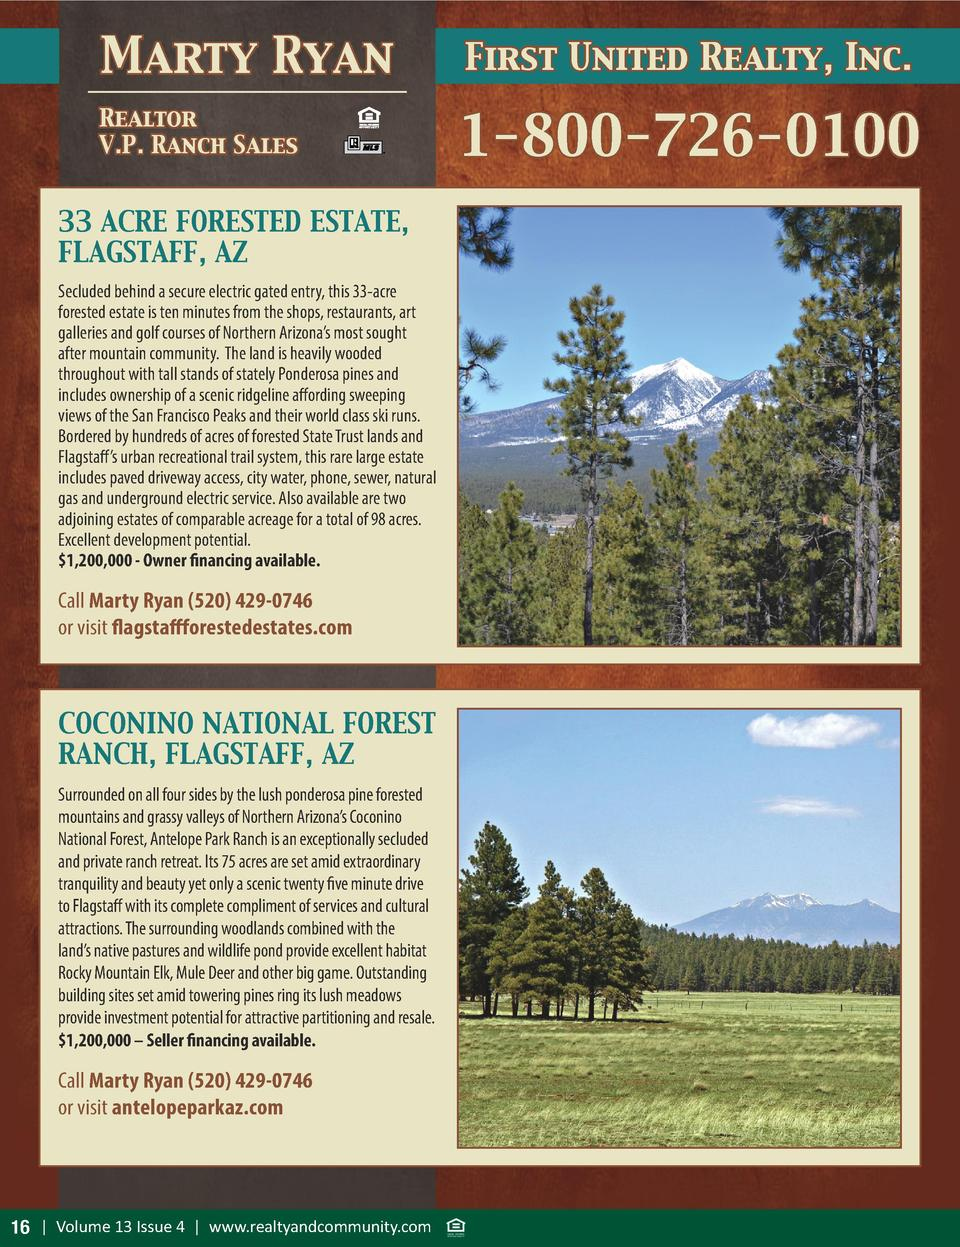 Marty Ryan Realtor V.P. Ranch Sales  33 ACRE FORESTED ESTATE, FLAGSTAFF, AZ Secluded behind a secure electric gated entry,...